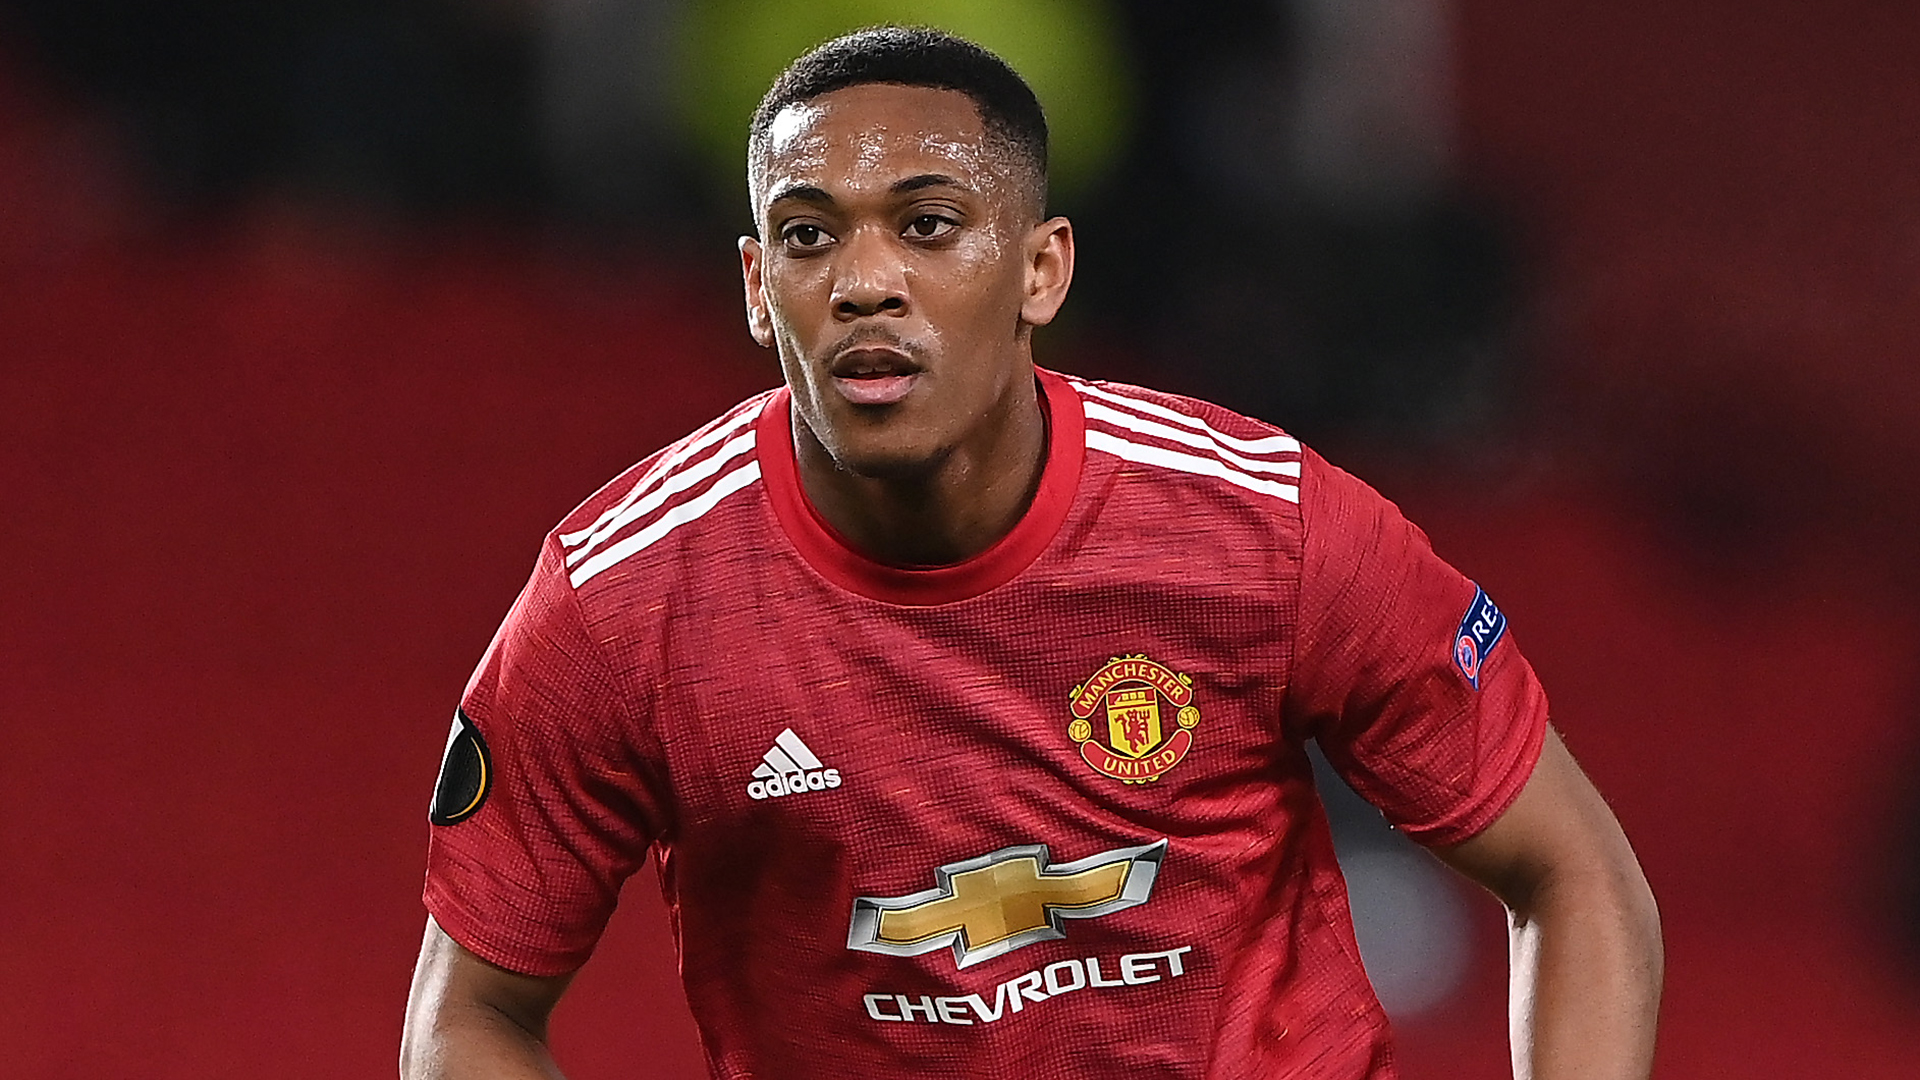 'Martial should stay at Man Utd and challenge himself' - Berbatov warns Red Devils star off Inter transfer